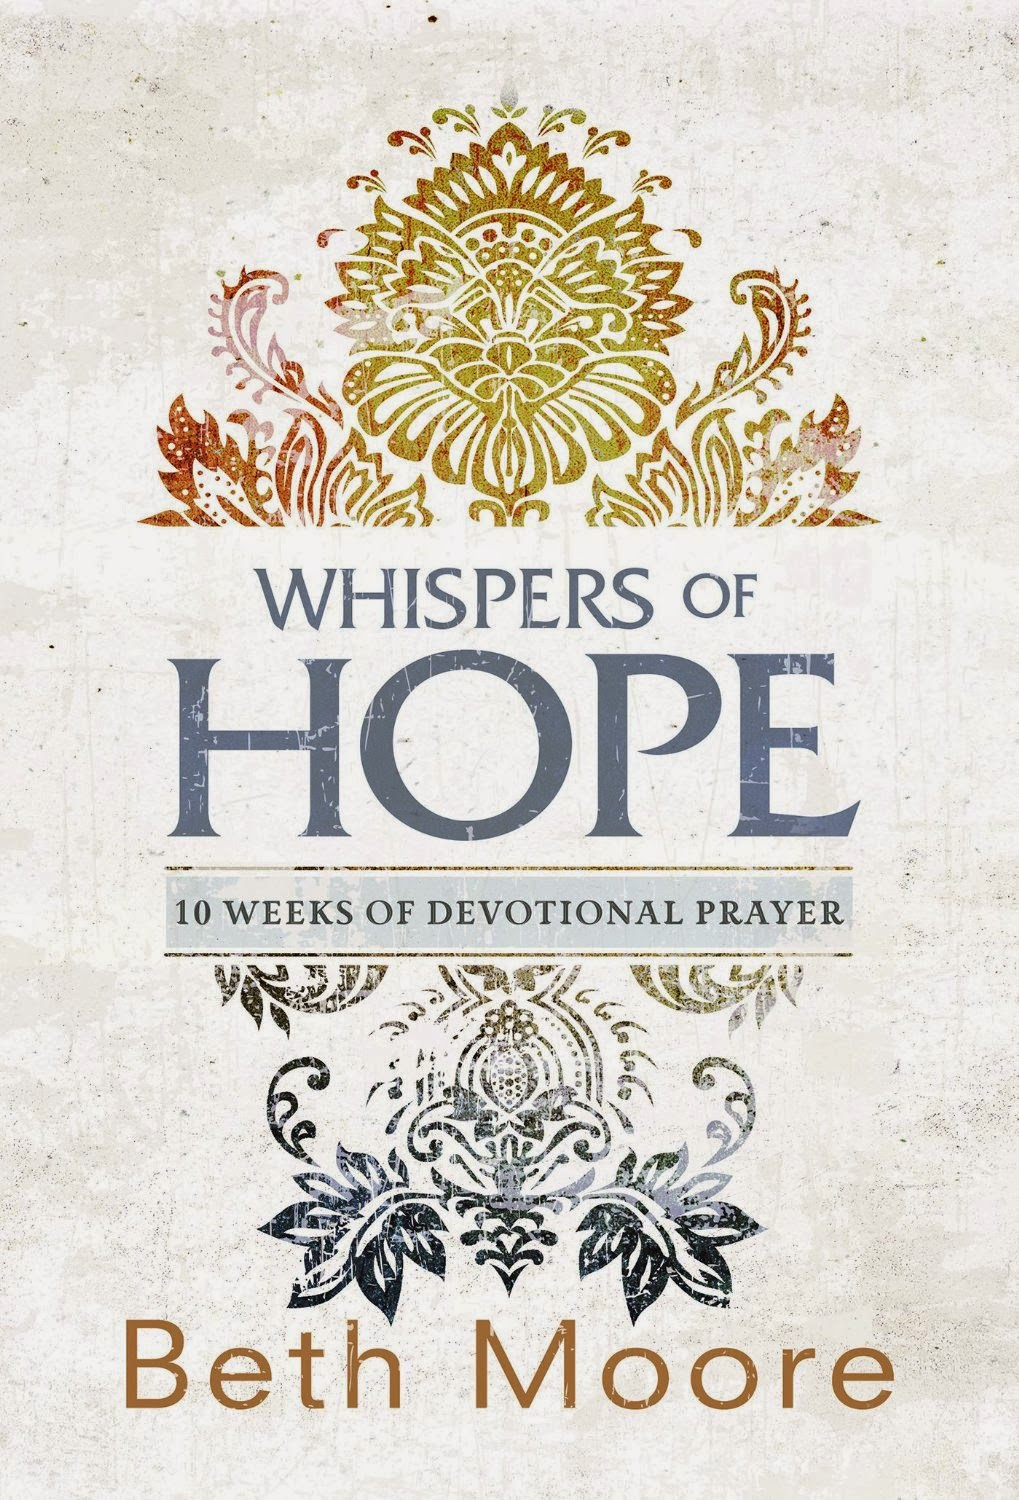 Christian chicks thoughts whispers of hope by beth moore whispers of hope by beth moore voltagebd Image collections